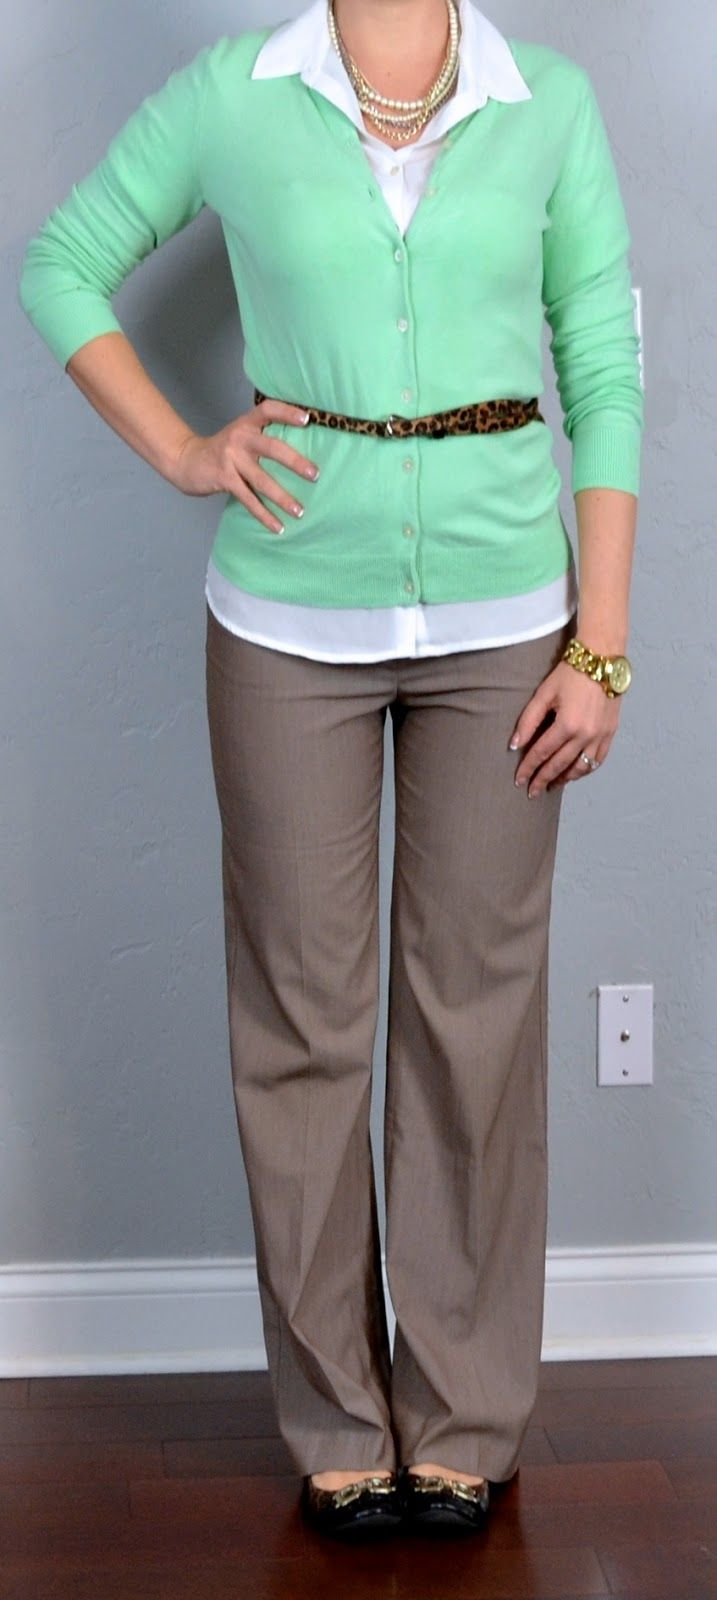 outfit post: mint cardigan, white button down shirt, tan pants | Outfit Posts Dynamic